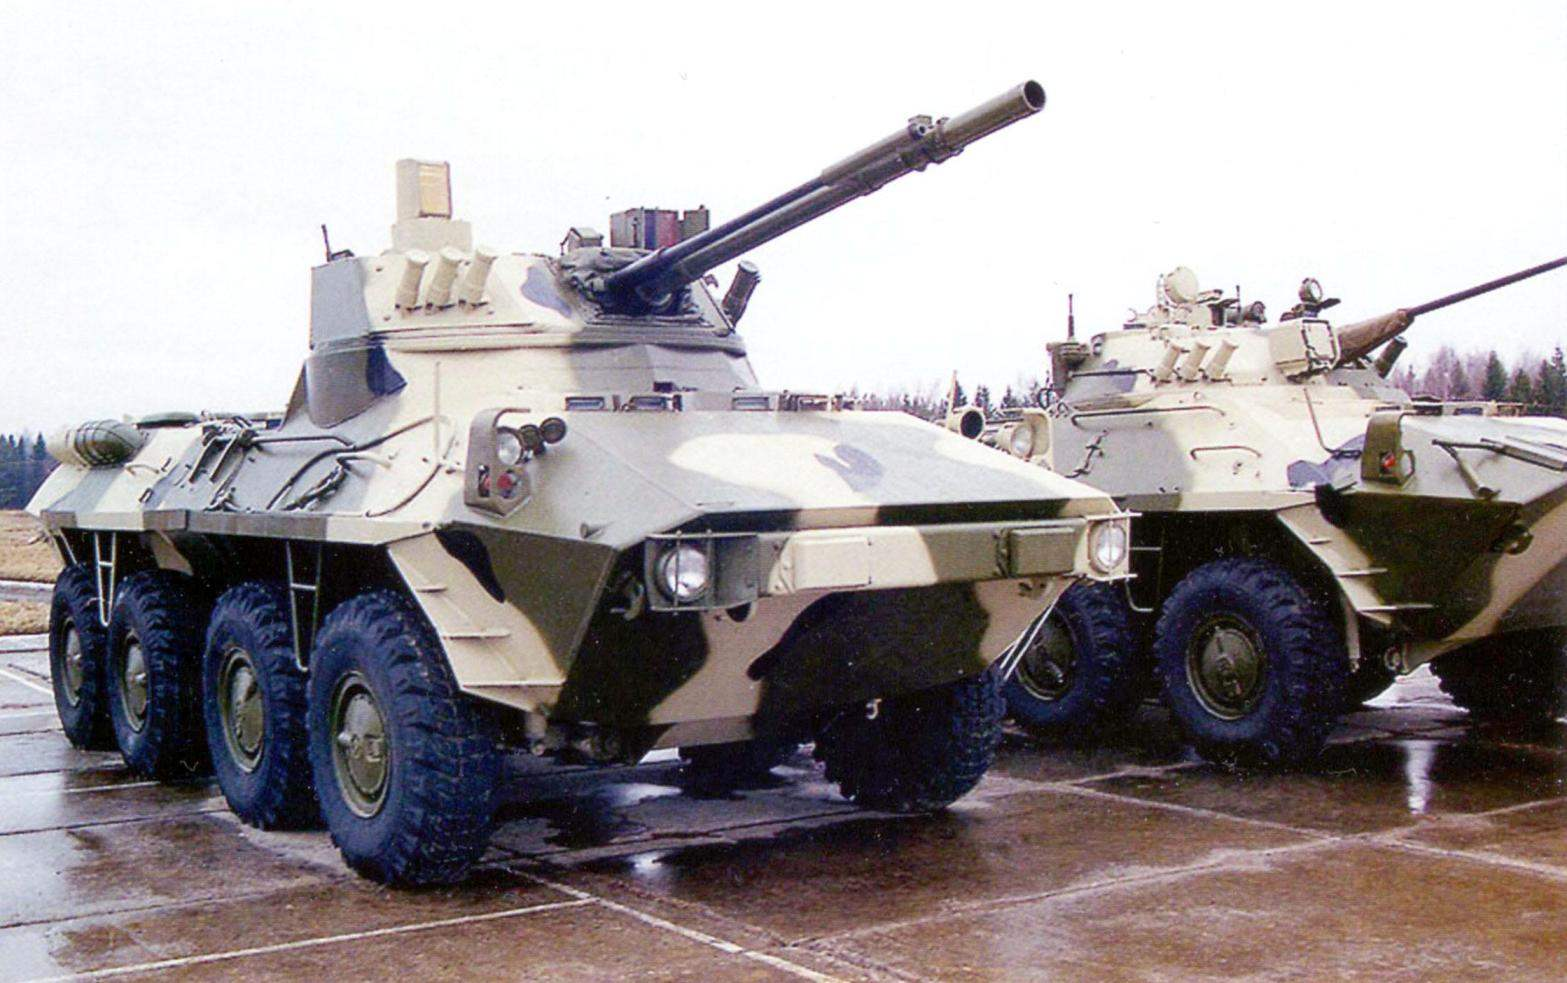 In the foreground is a BTR-90M with the combat module